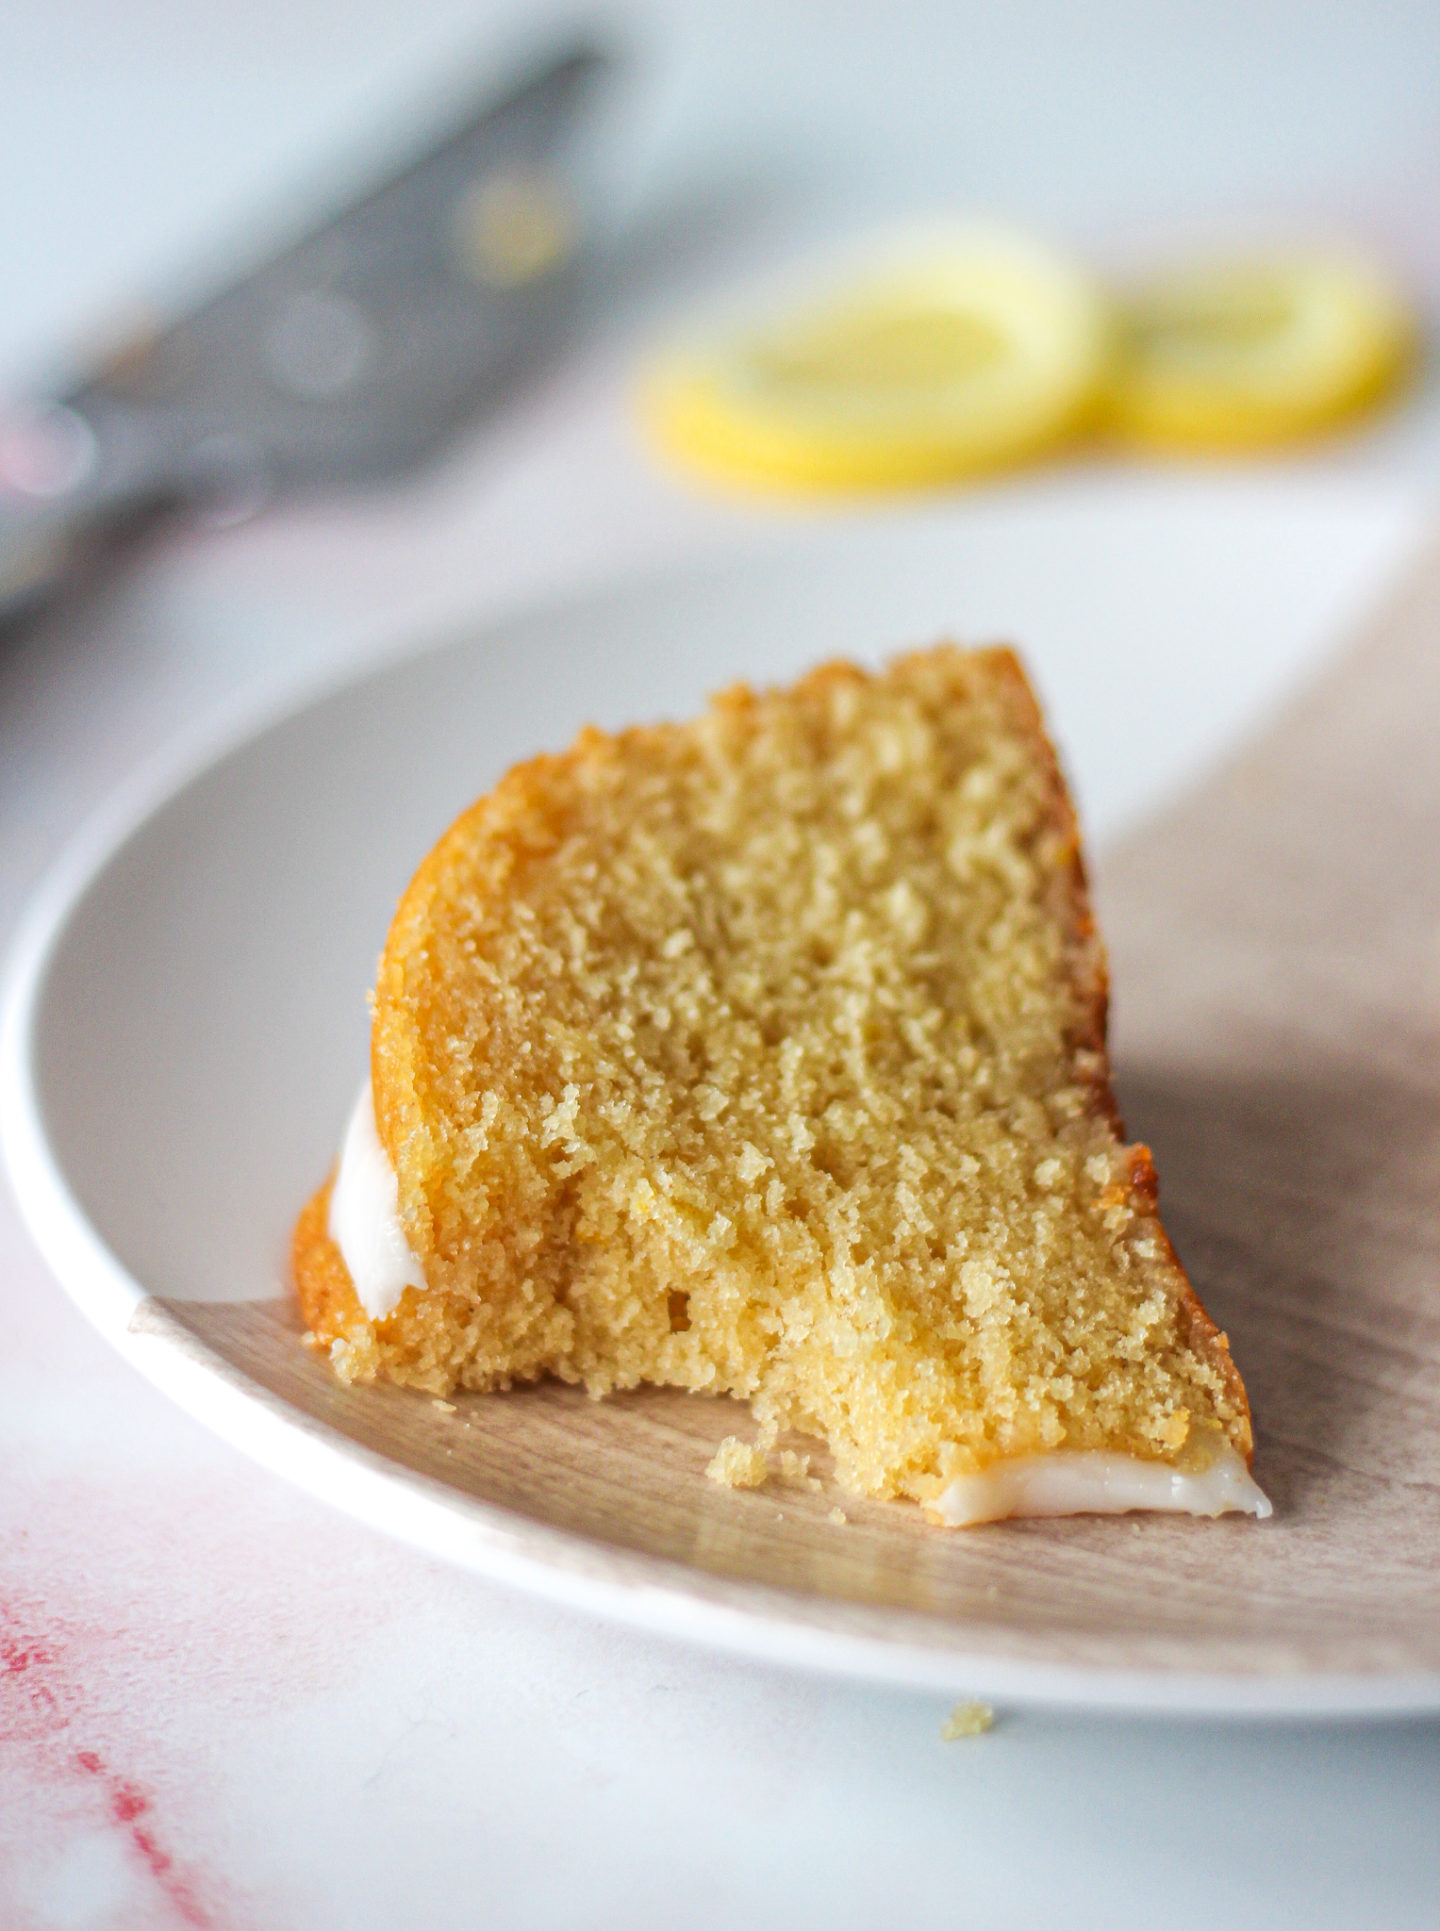 Close up of a slice of lemon drizzle bundt cake on a serving plate